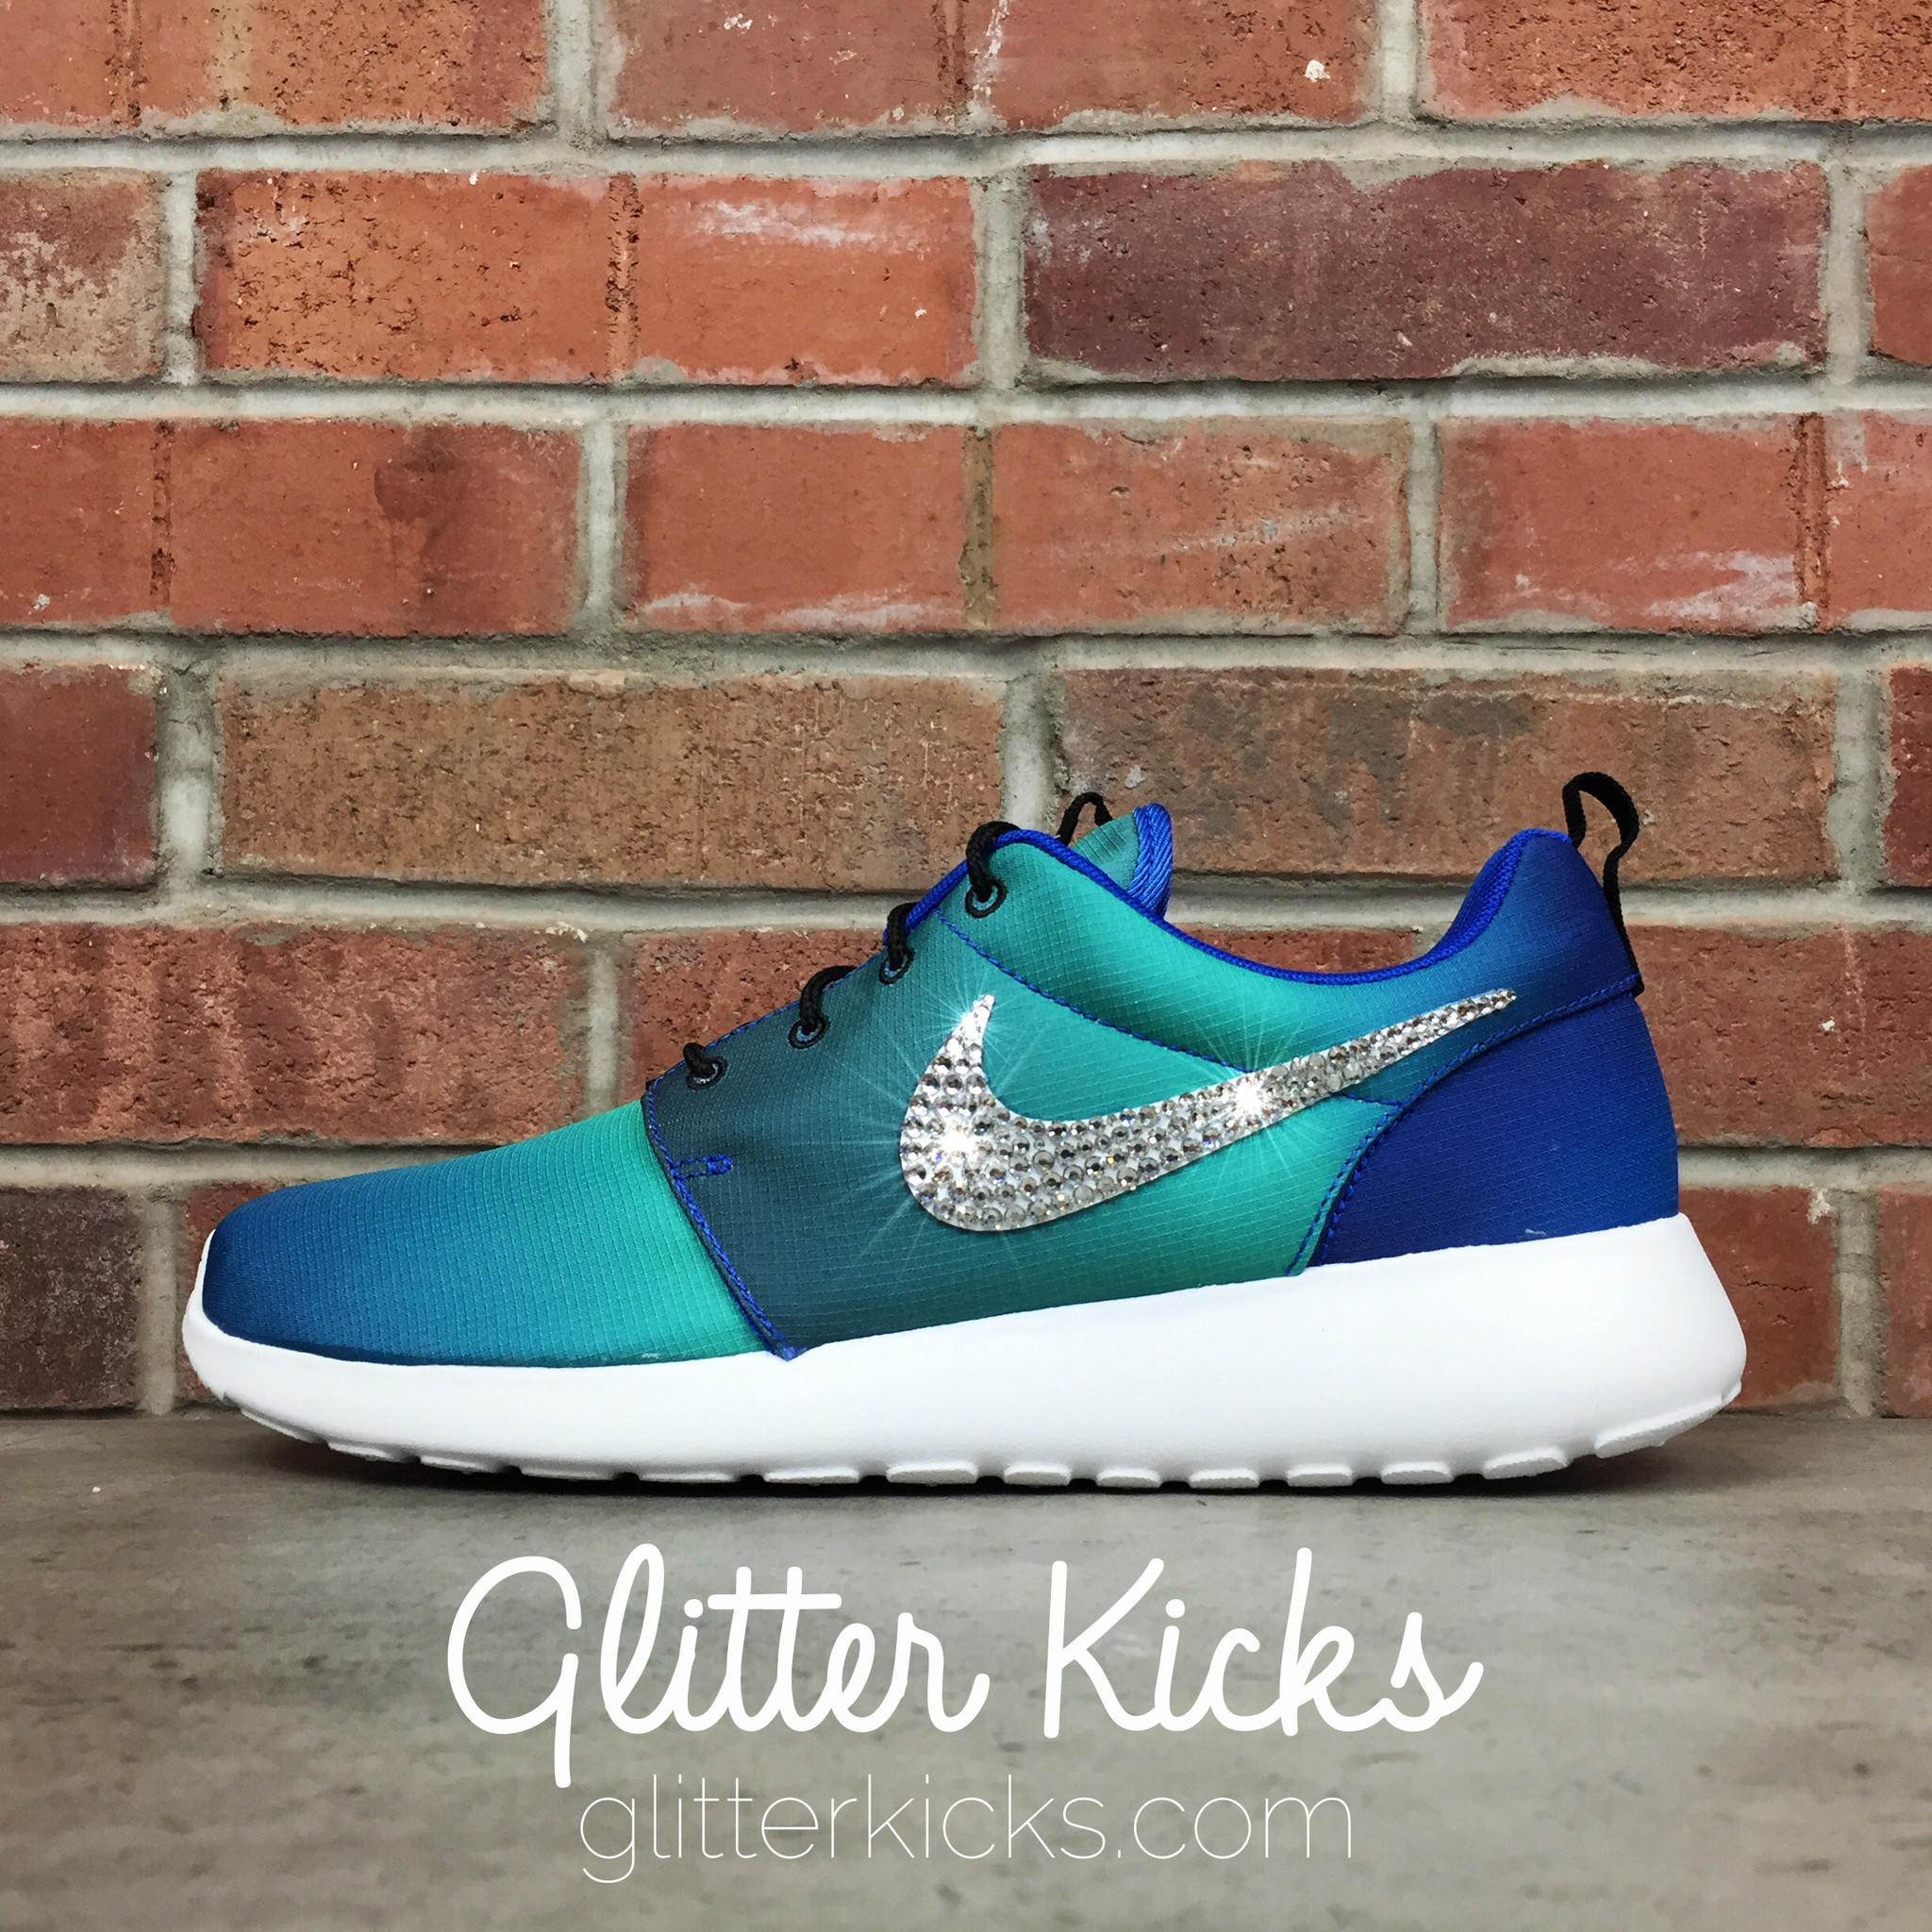 Women s Nike Roshe One PRT Casual Shoes from Glitter Kicks c74096cfc2bd